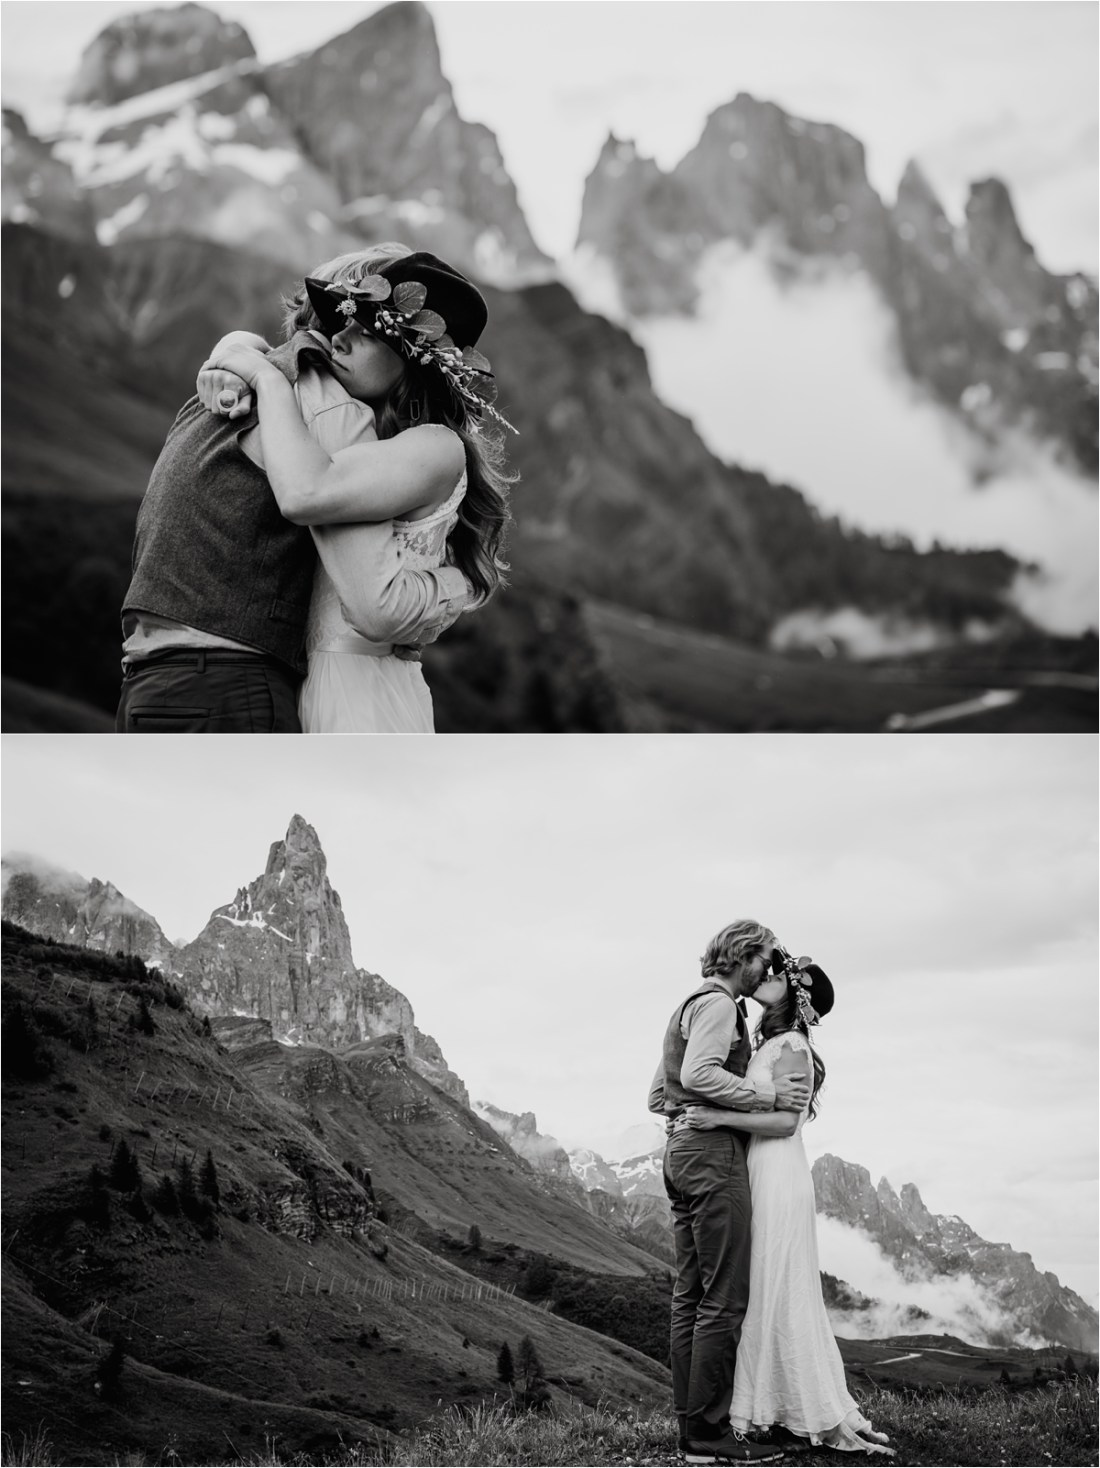 Black & white pictures of a bride and groom embracing with the Dolomites in the background. Photography by Wild Connections Photography